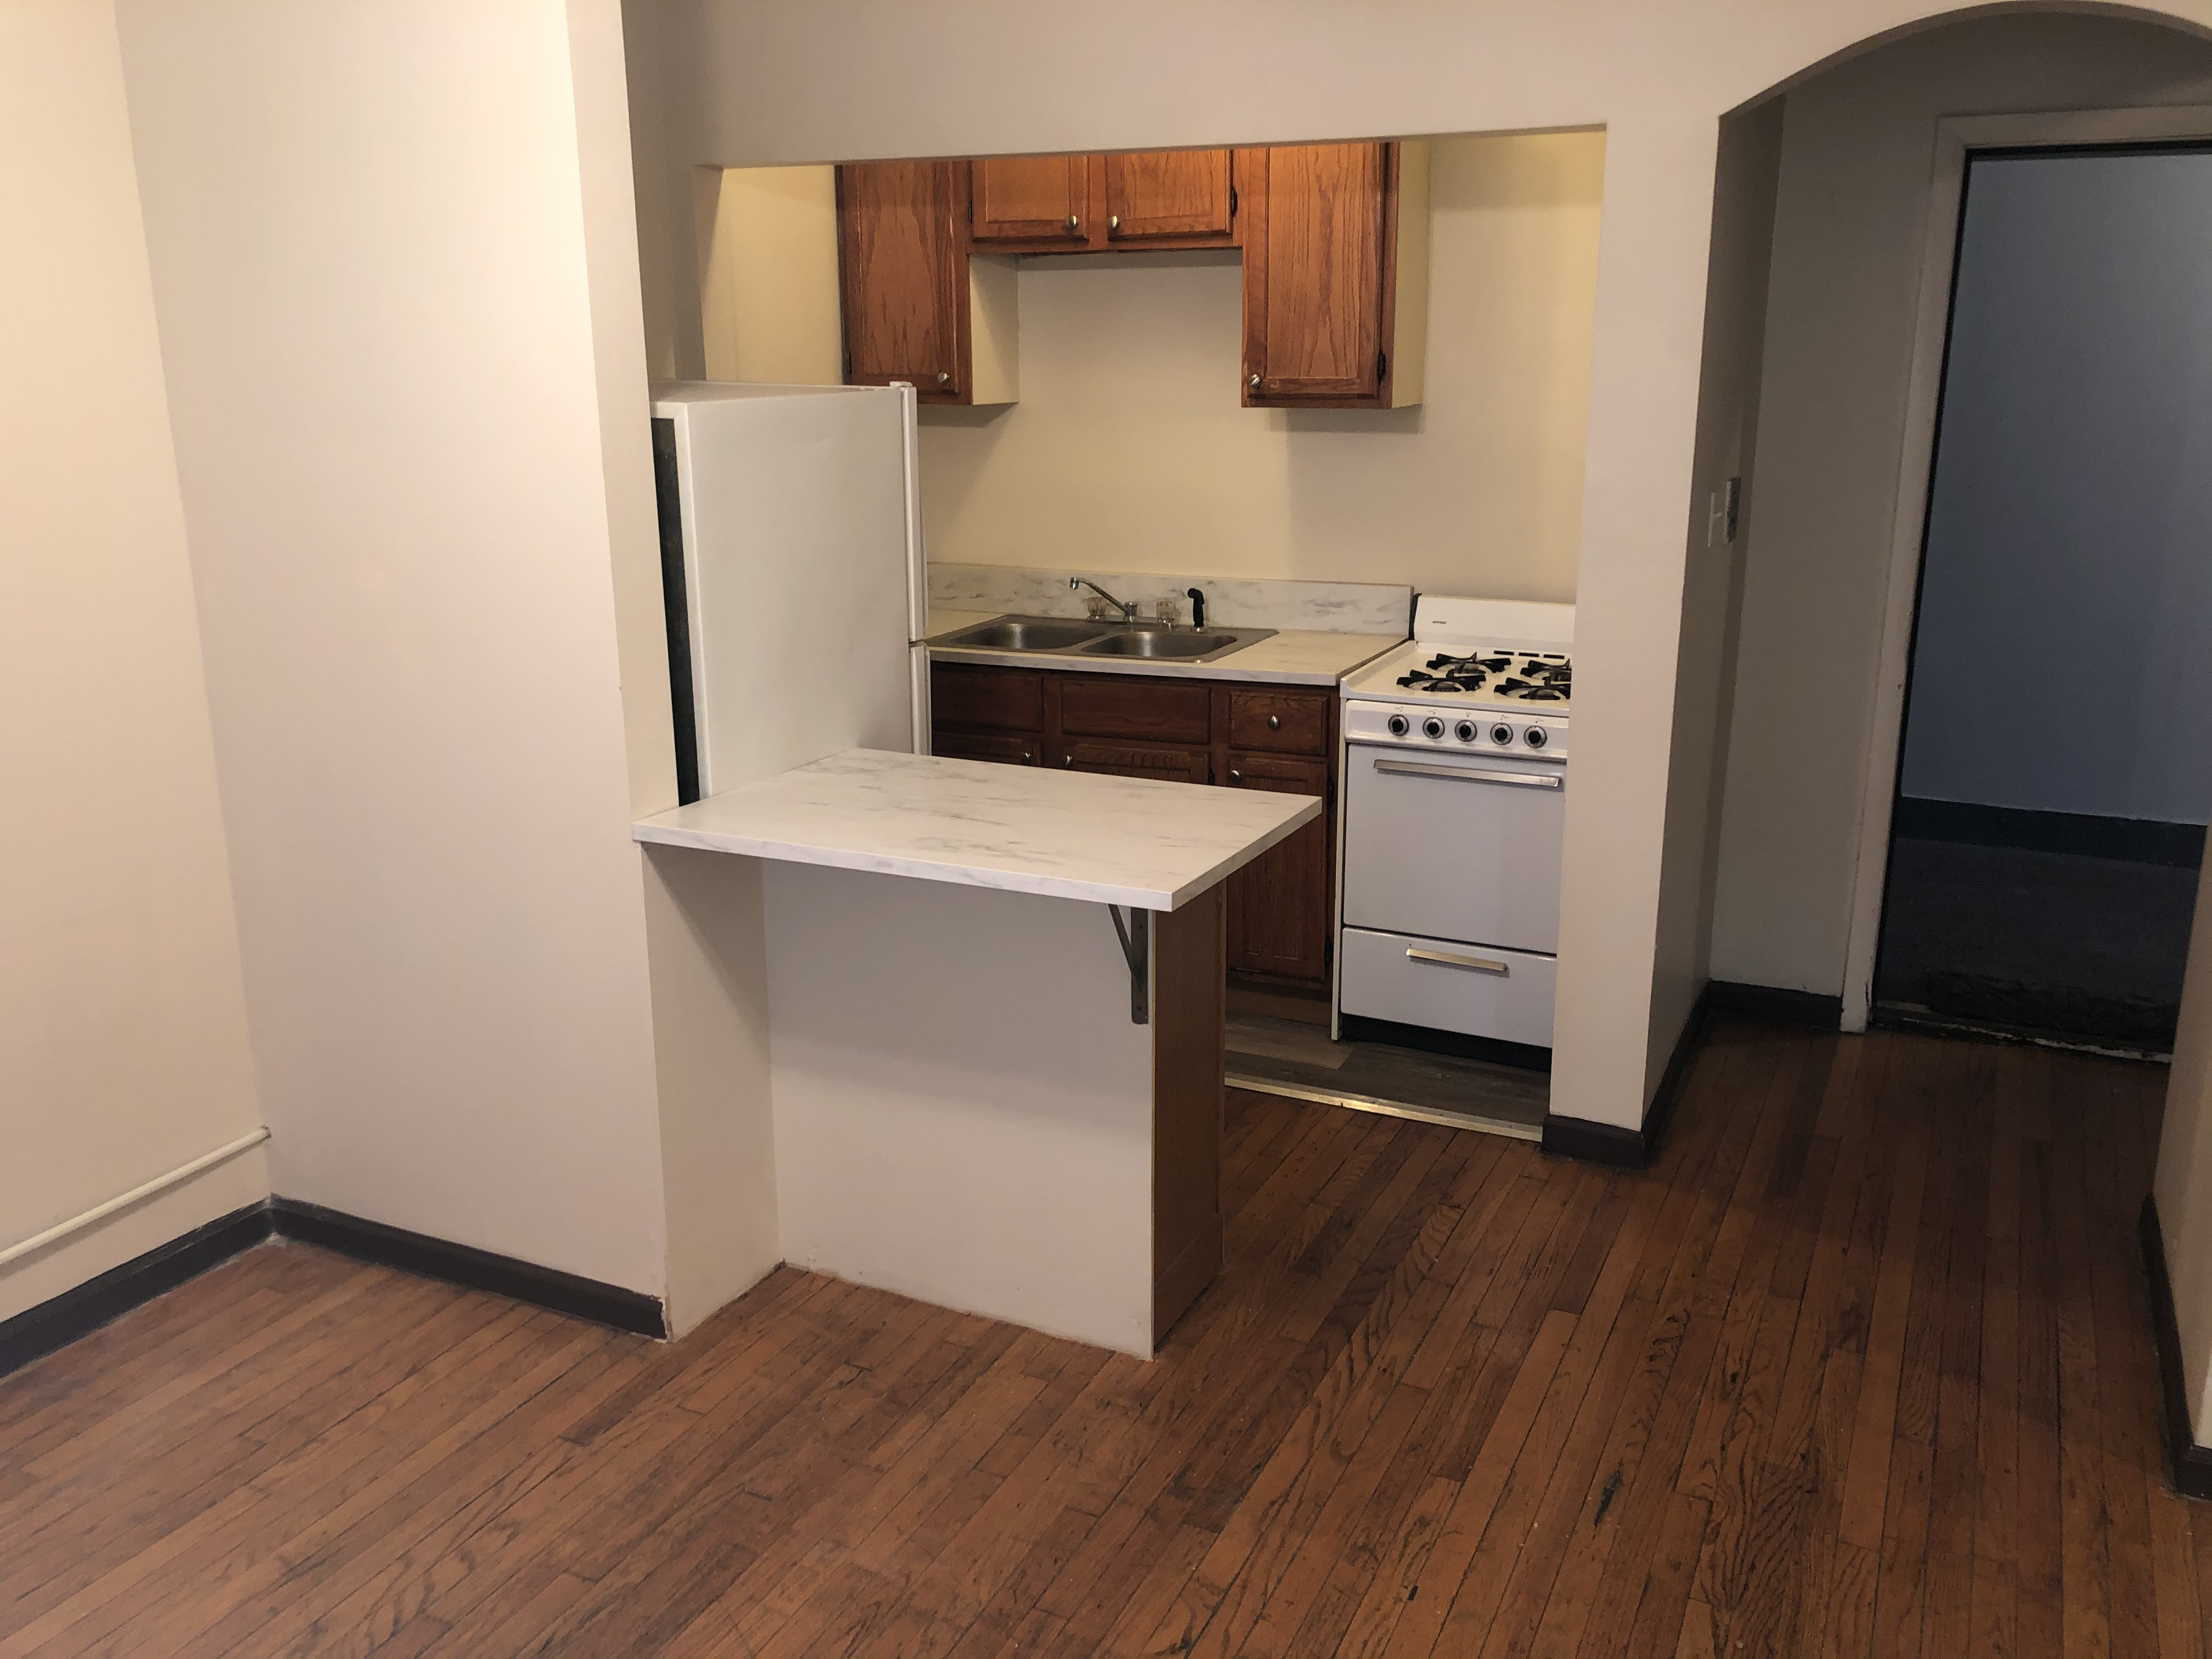 Studio apartment in Austin Chicago, 5412 W Ferdinand, Chicago IL 60644, Unit #6